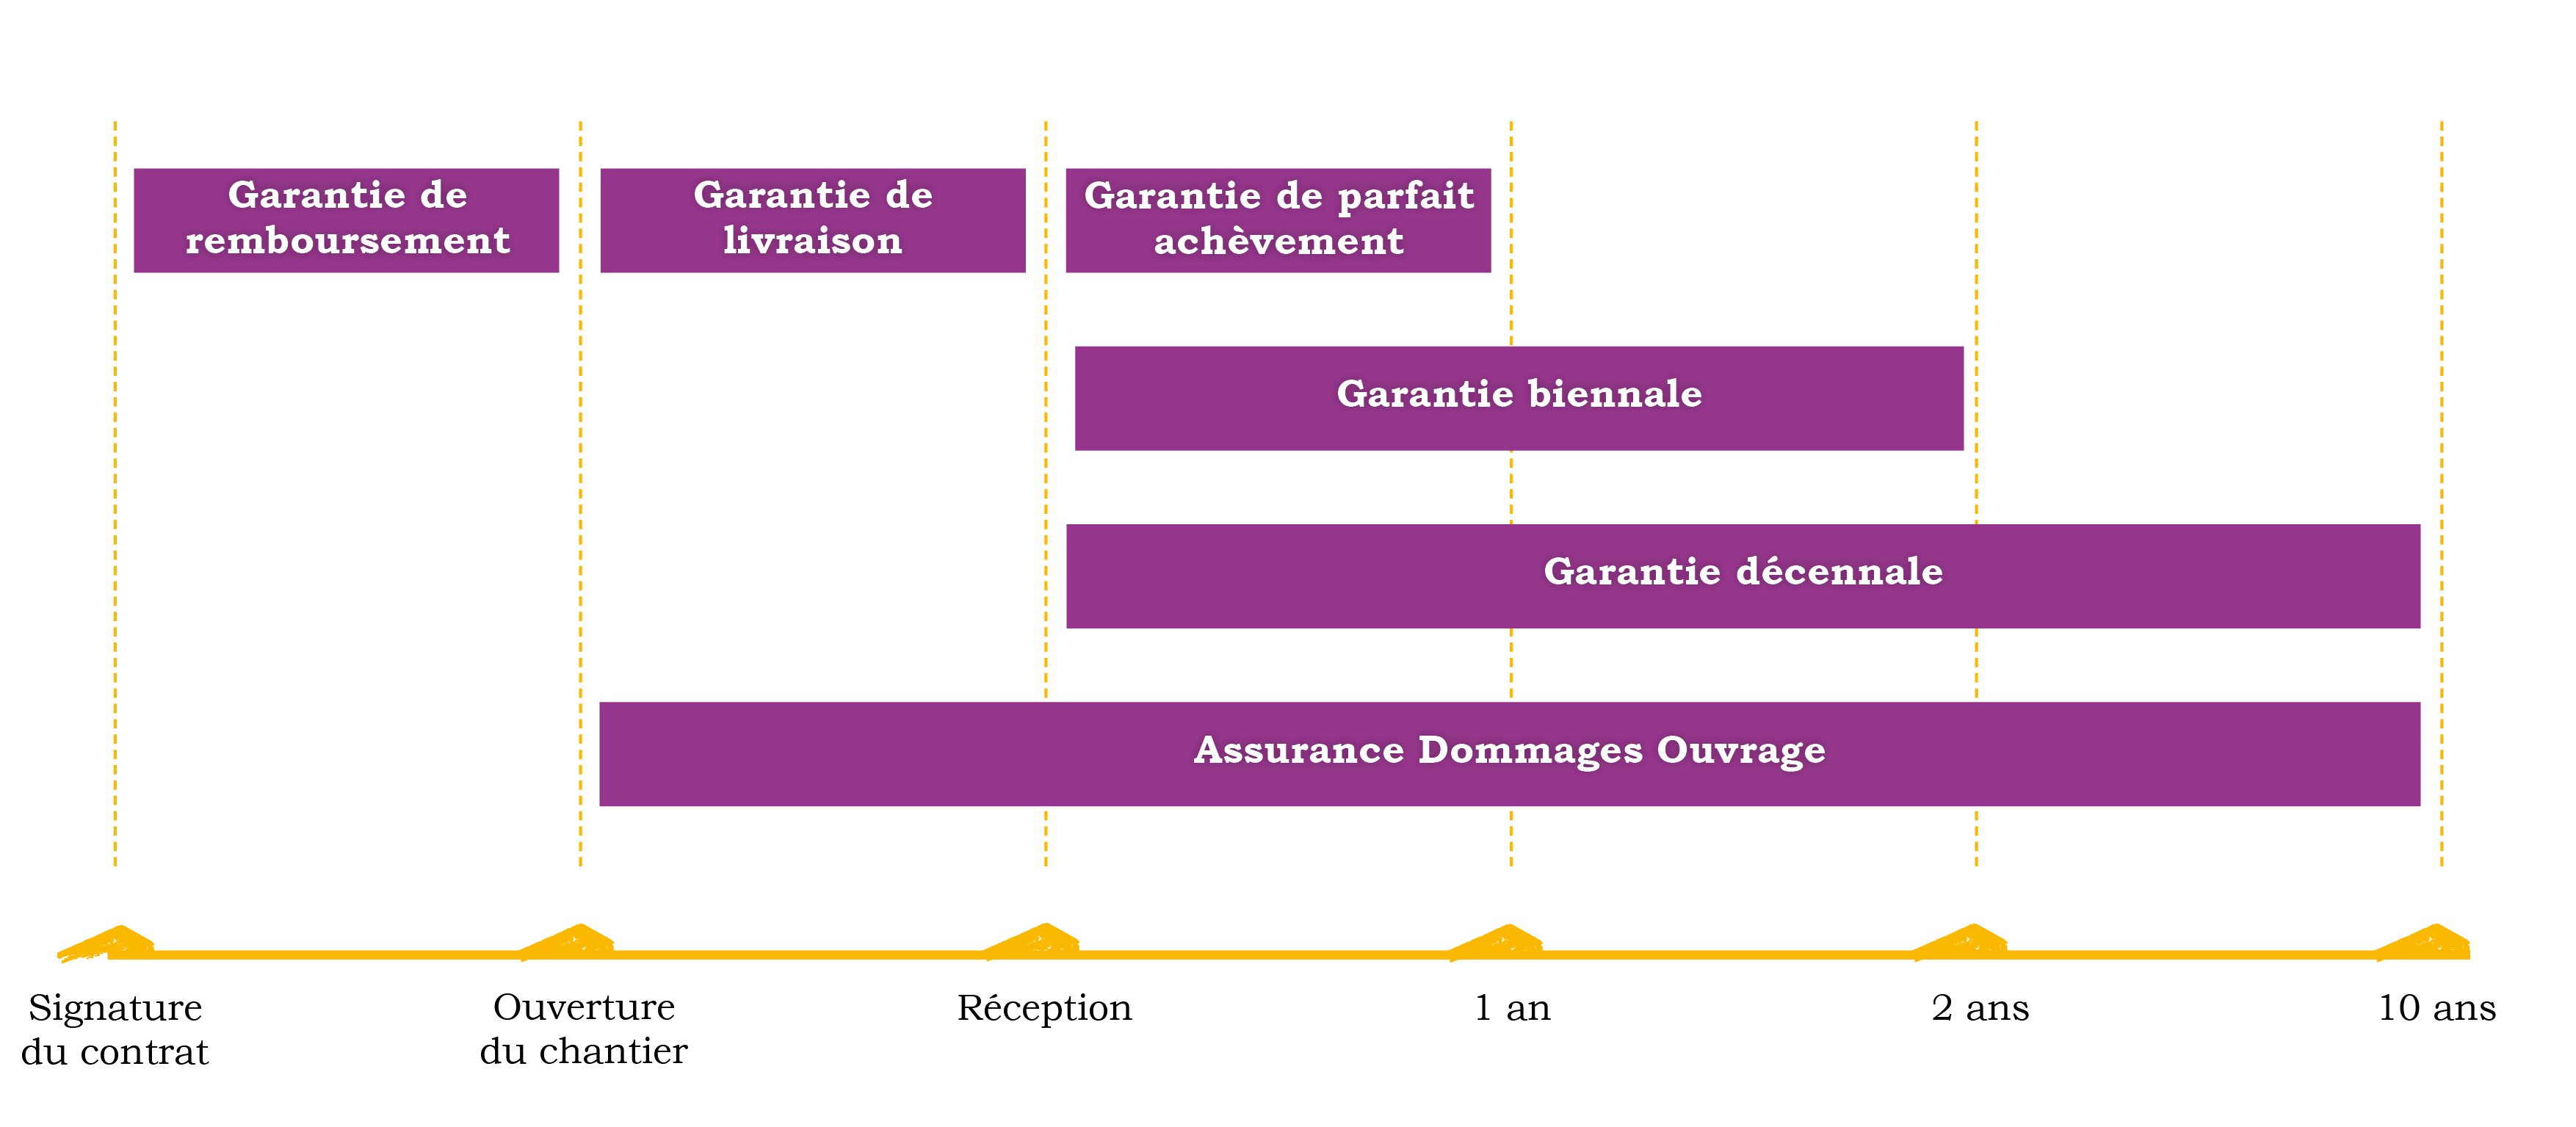 Les garanties et assurances du ccmi villas trident for Assurance construction maison